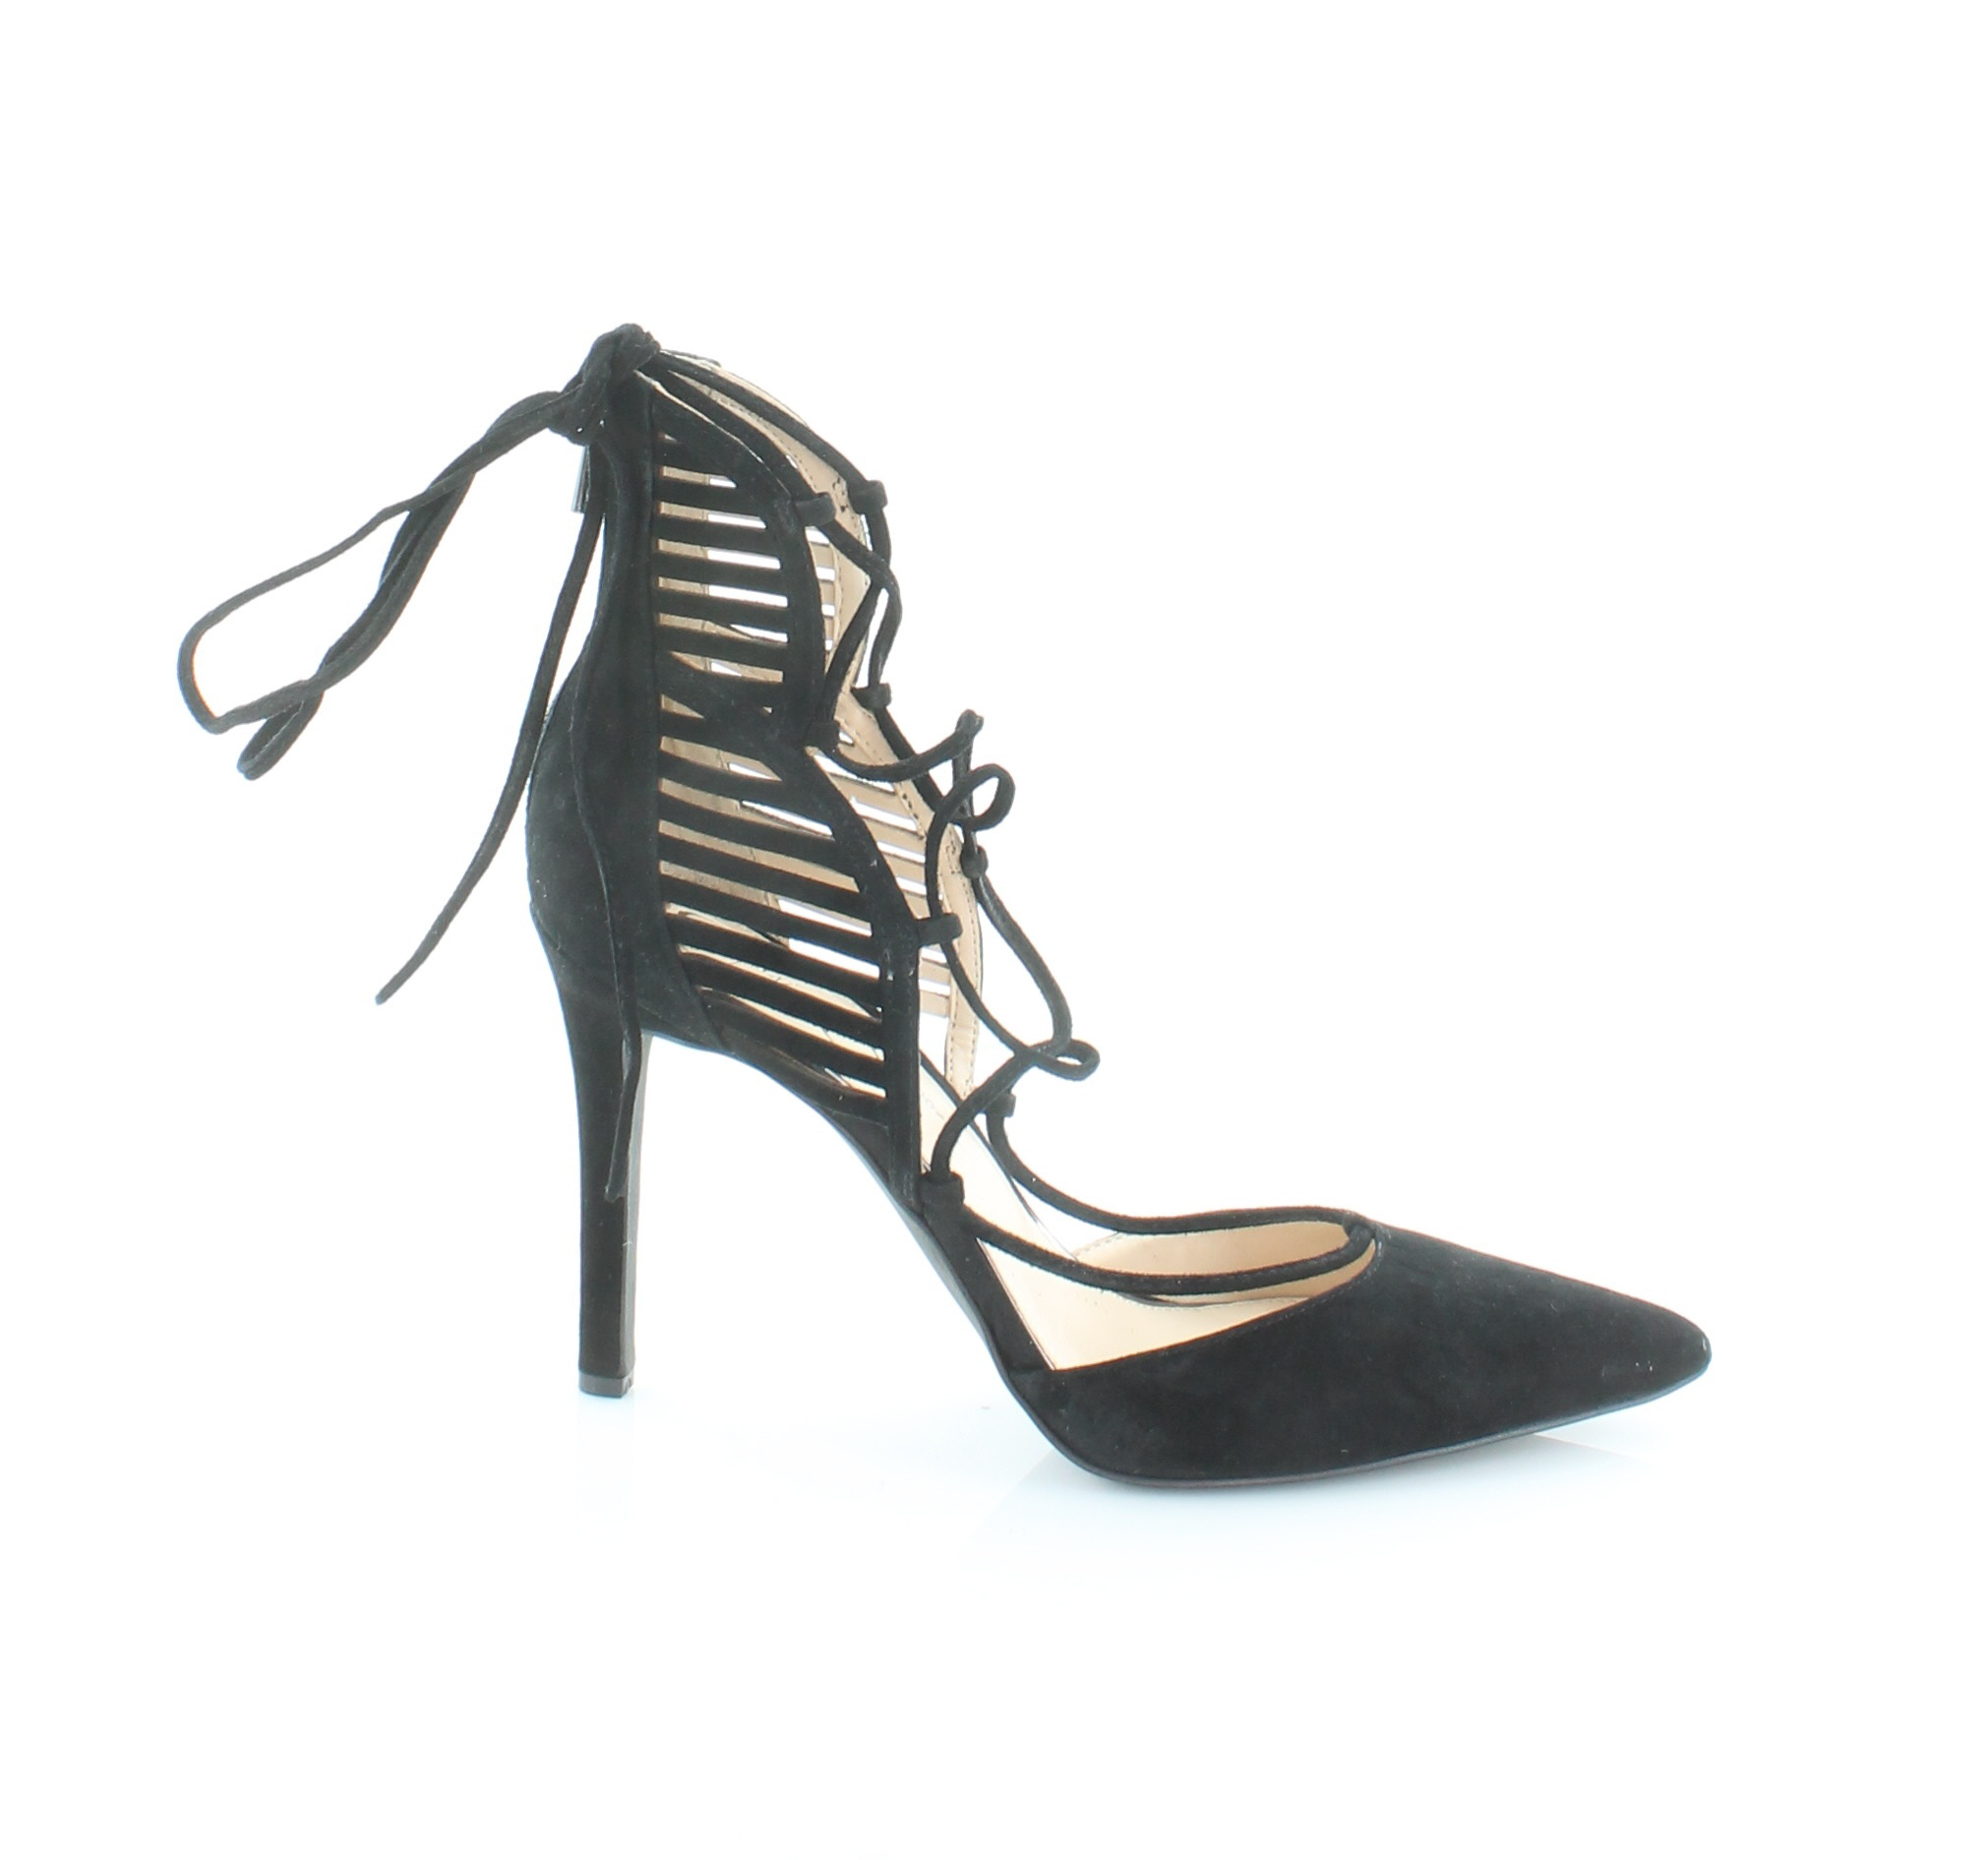 691f1bd54 Jessica Simpson Cynessa Black Womens Shoes Size 9.5 M Heels MSRP $110 1 of  5FREE Shipping ...